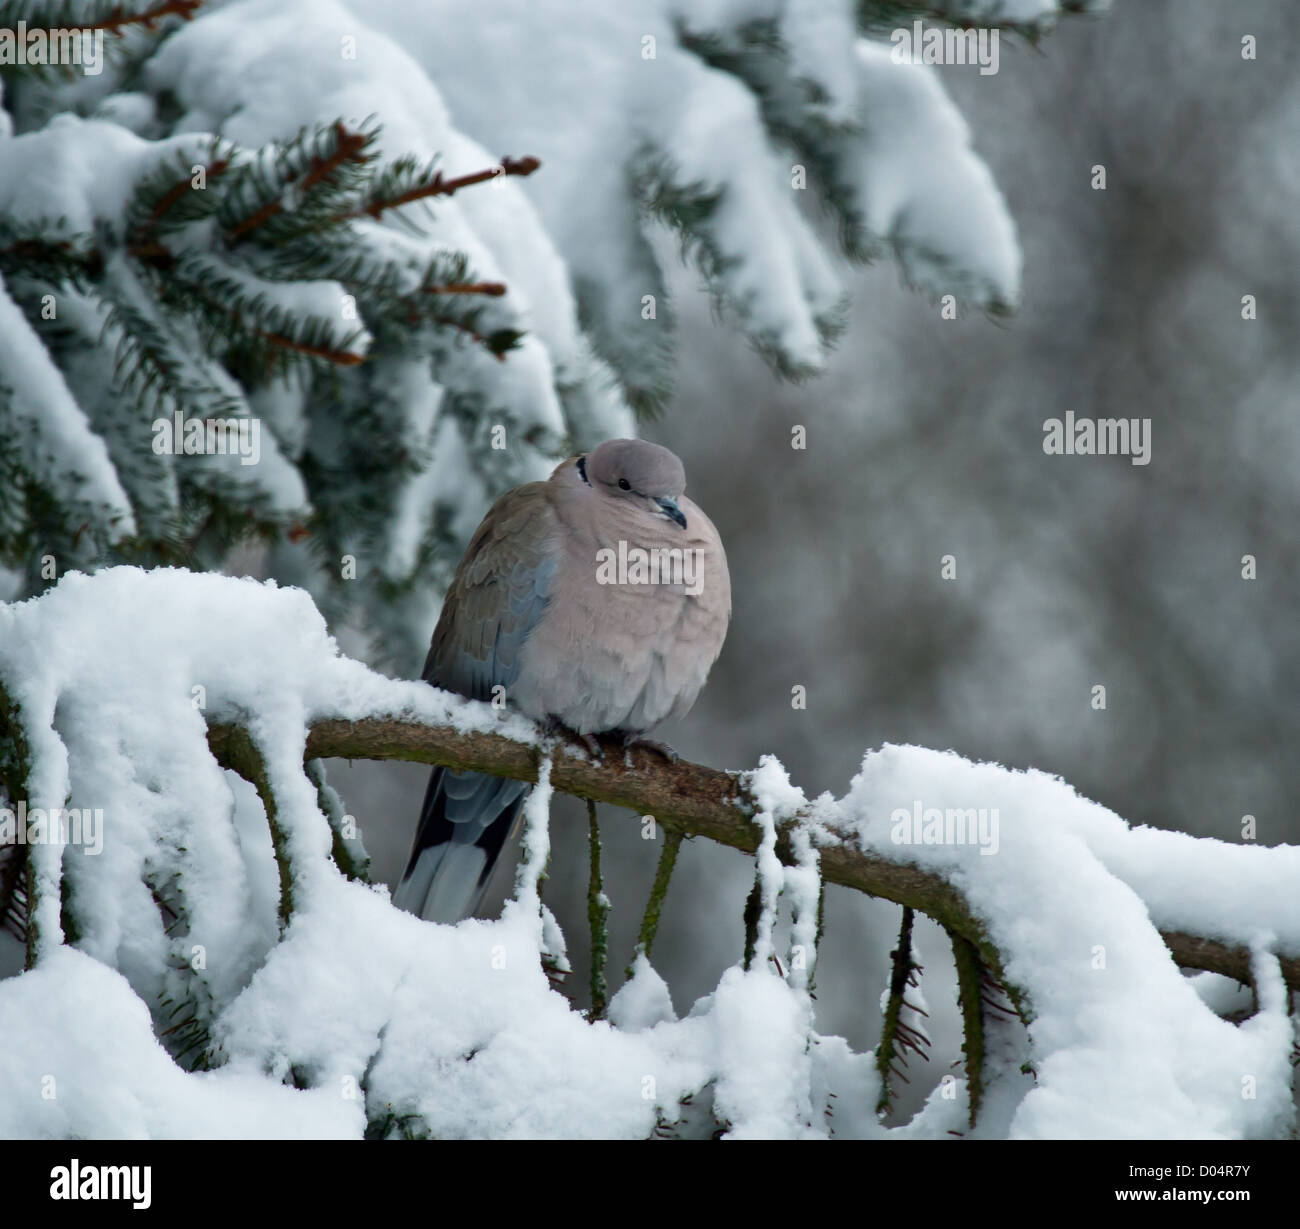 Collared Dove resting on Norway Spruce tree branch in snow - Stock Image